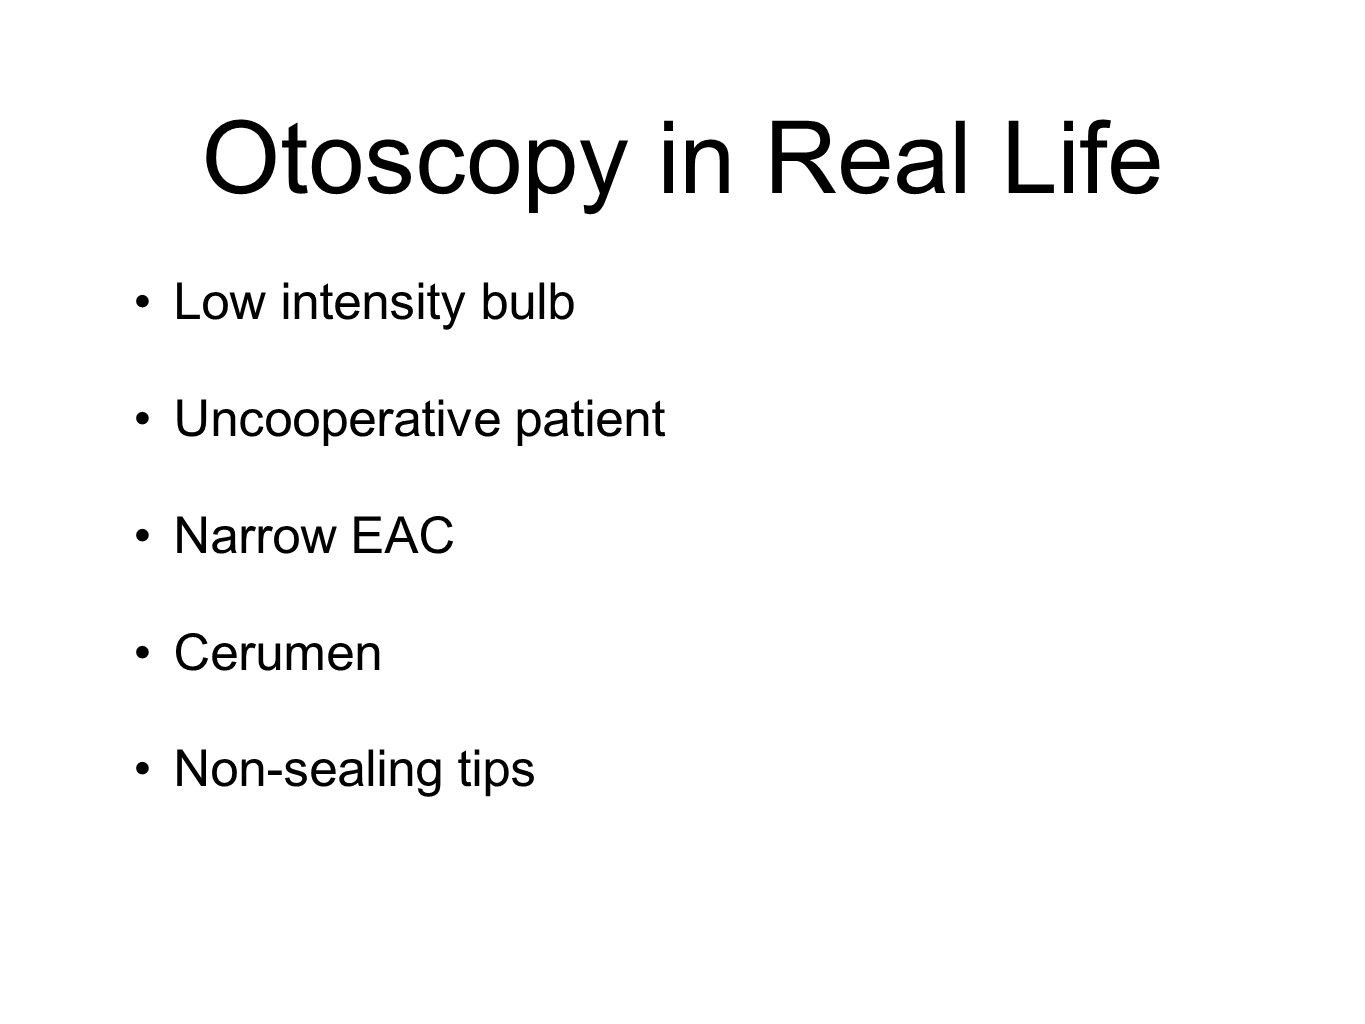 Otoscopy in Real Life Low intensity bulb Uncooperative patient